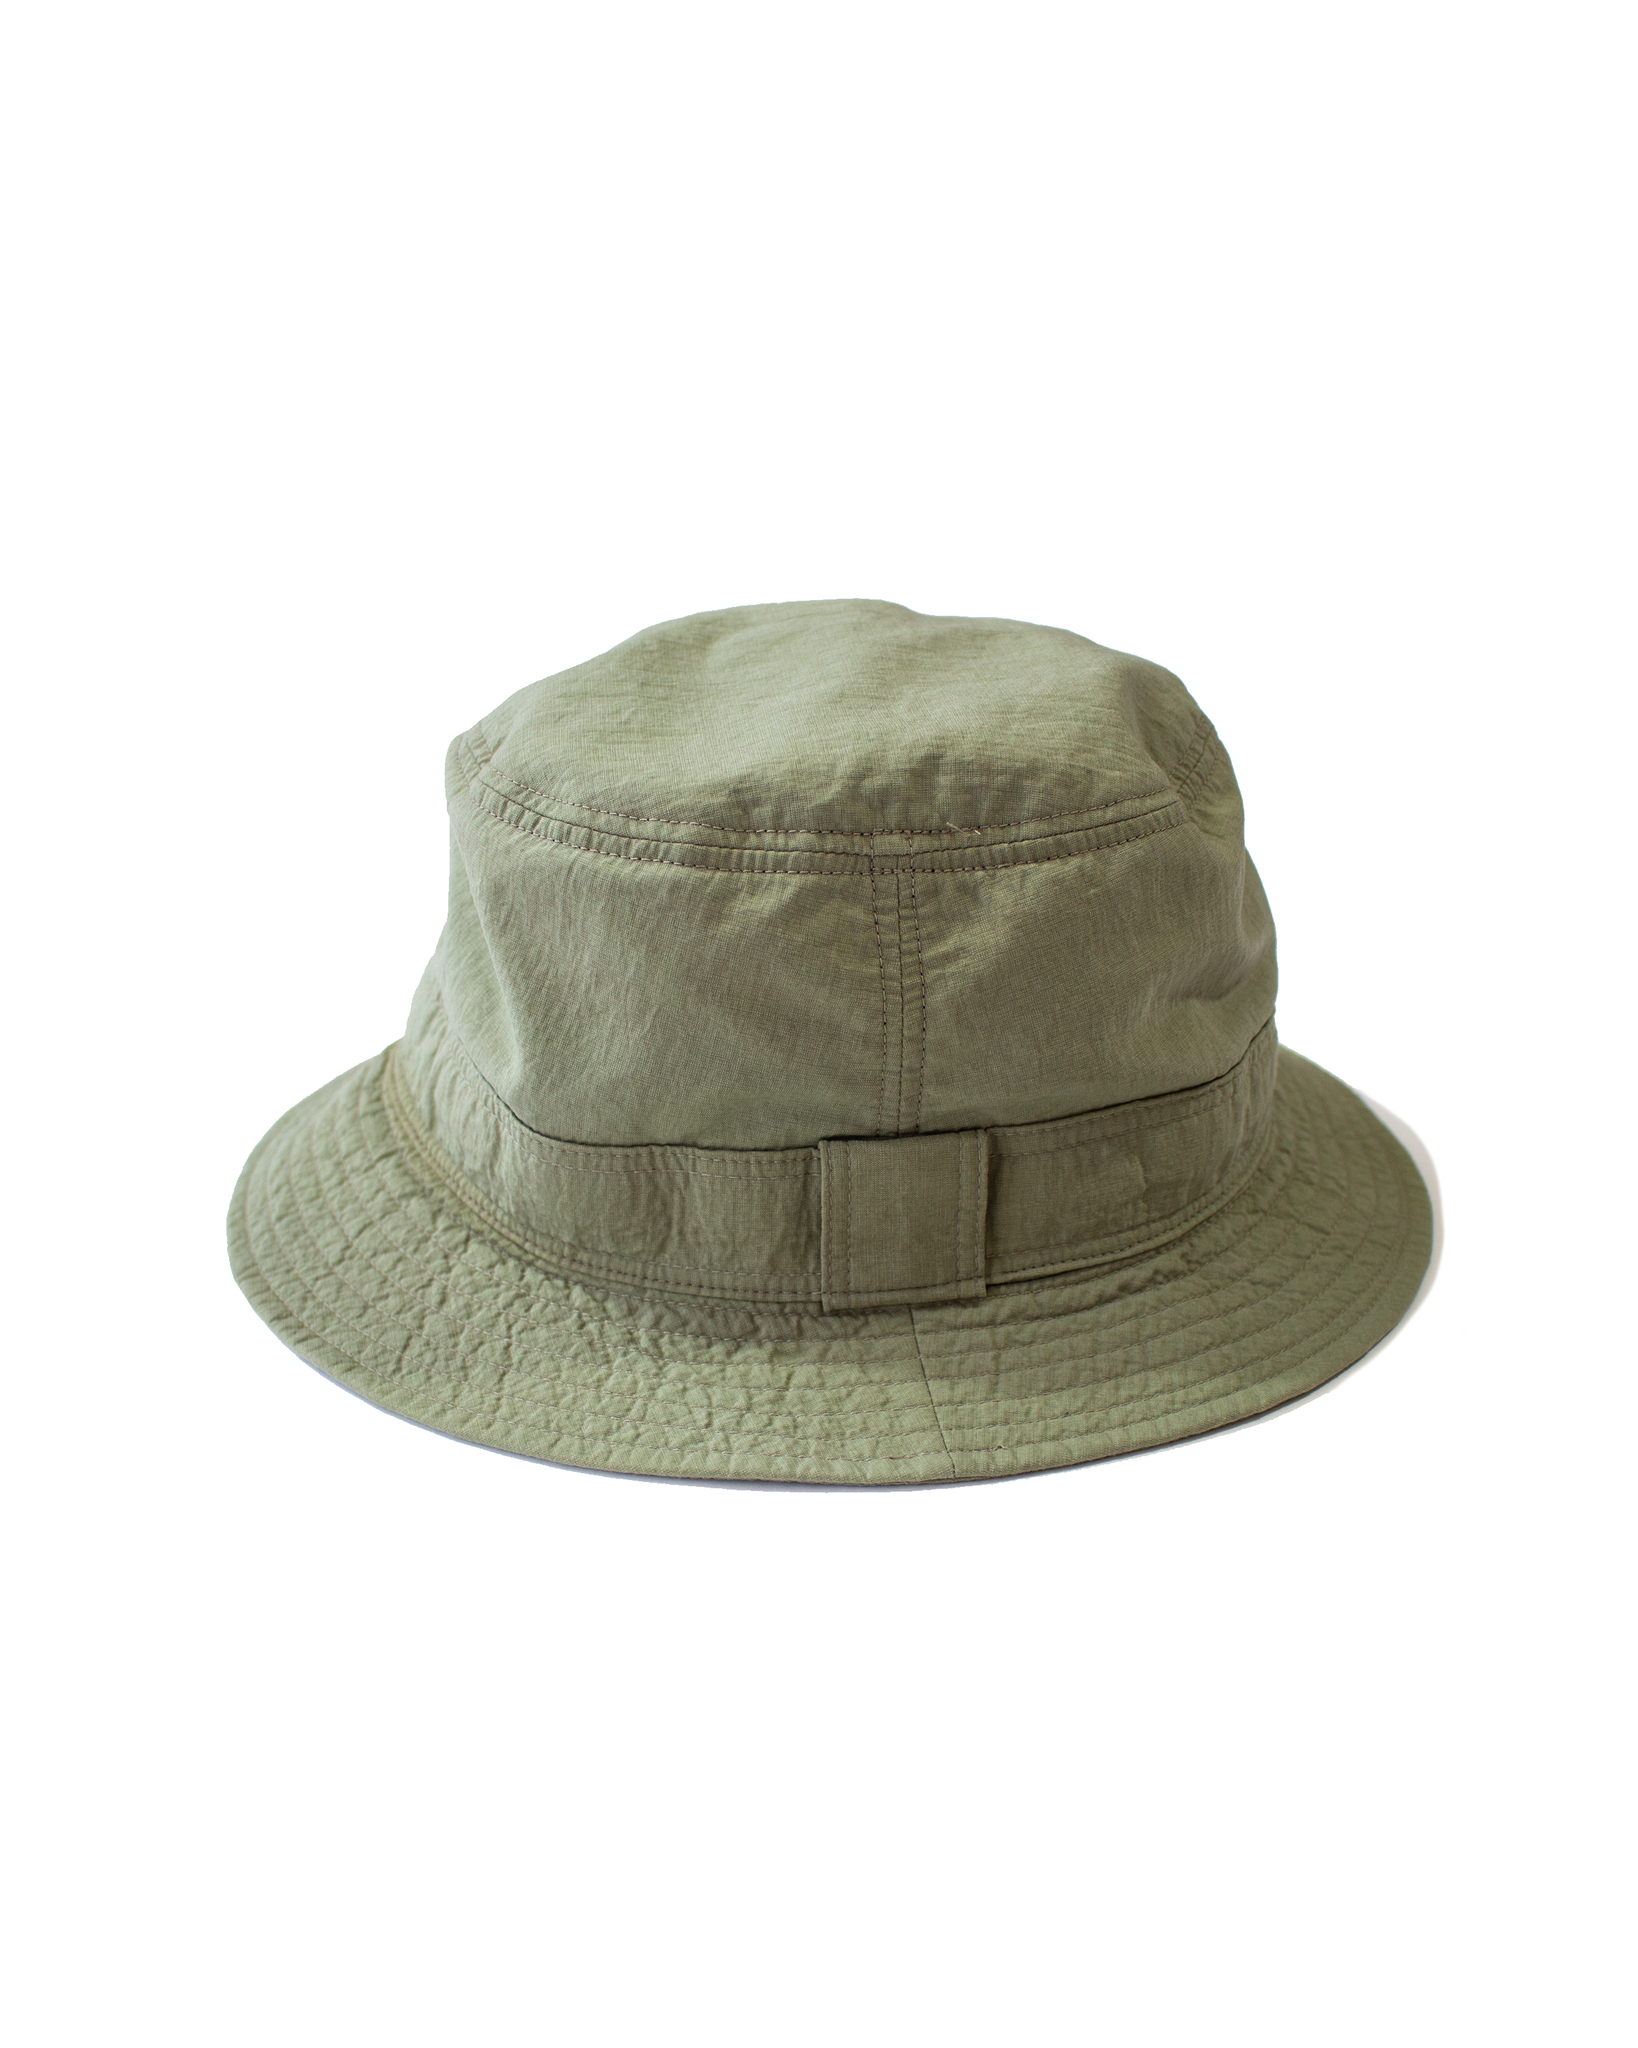 Issey Miyake Light Green Cotton Bucket Hat 1990s